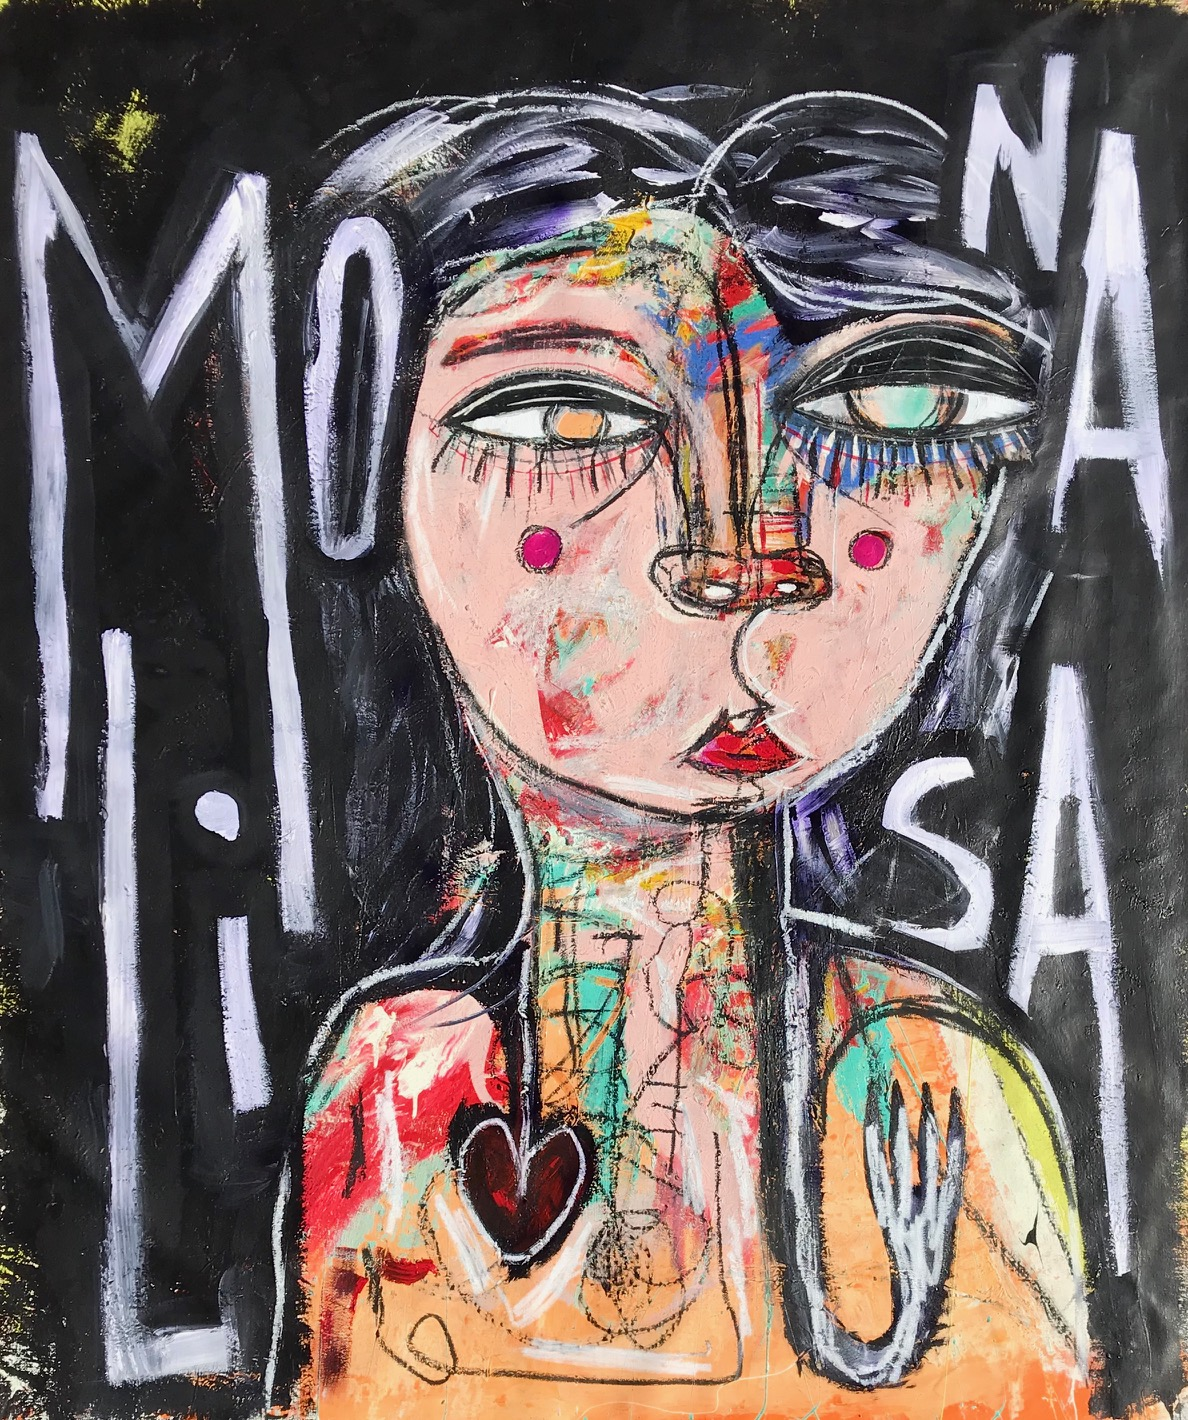 LA MONA LISA. SOLD